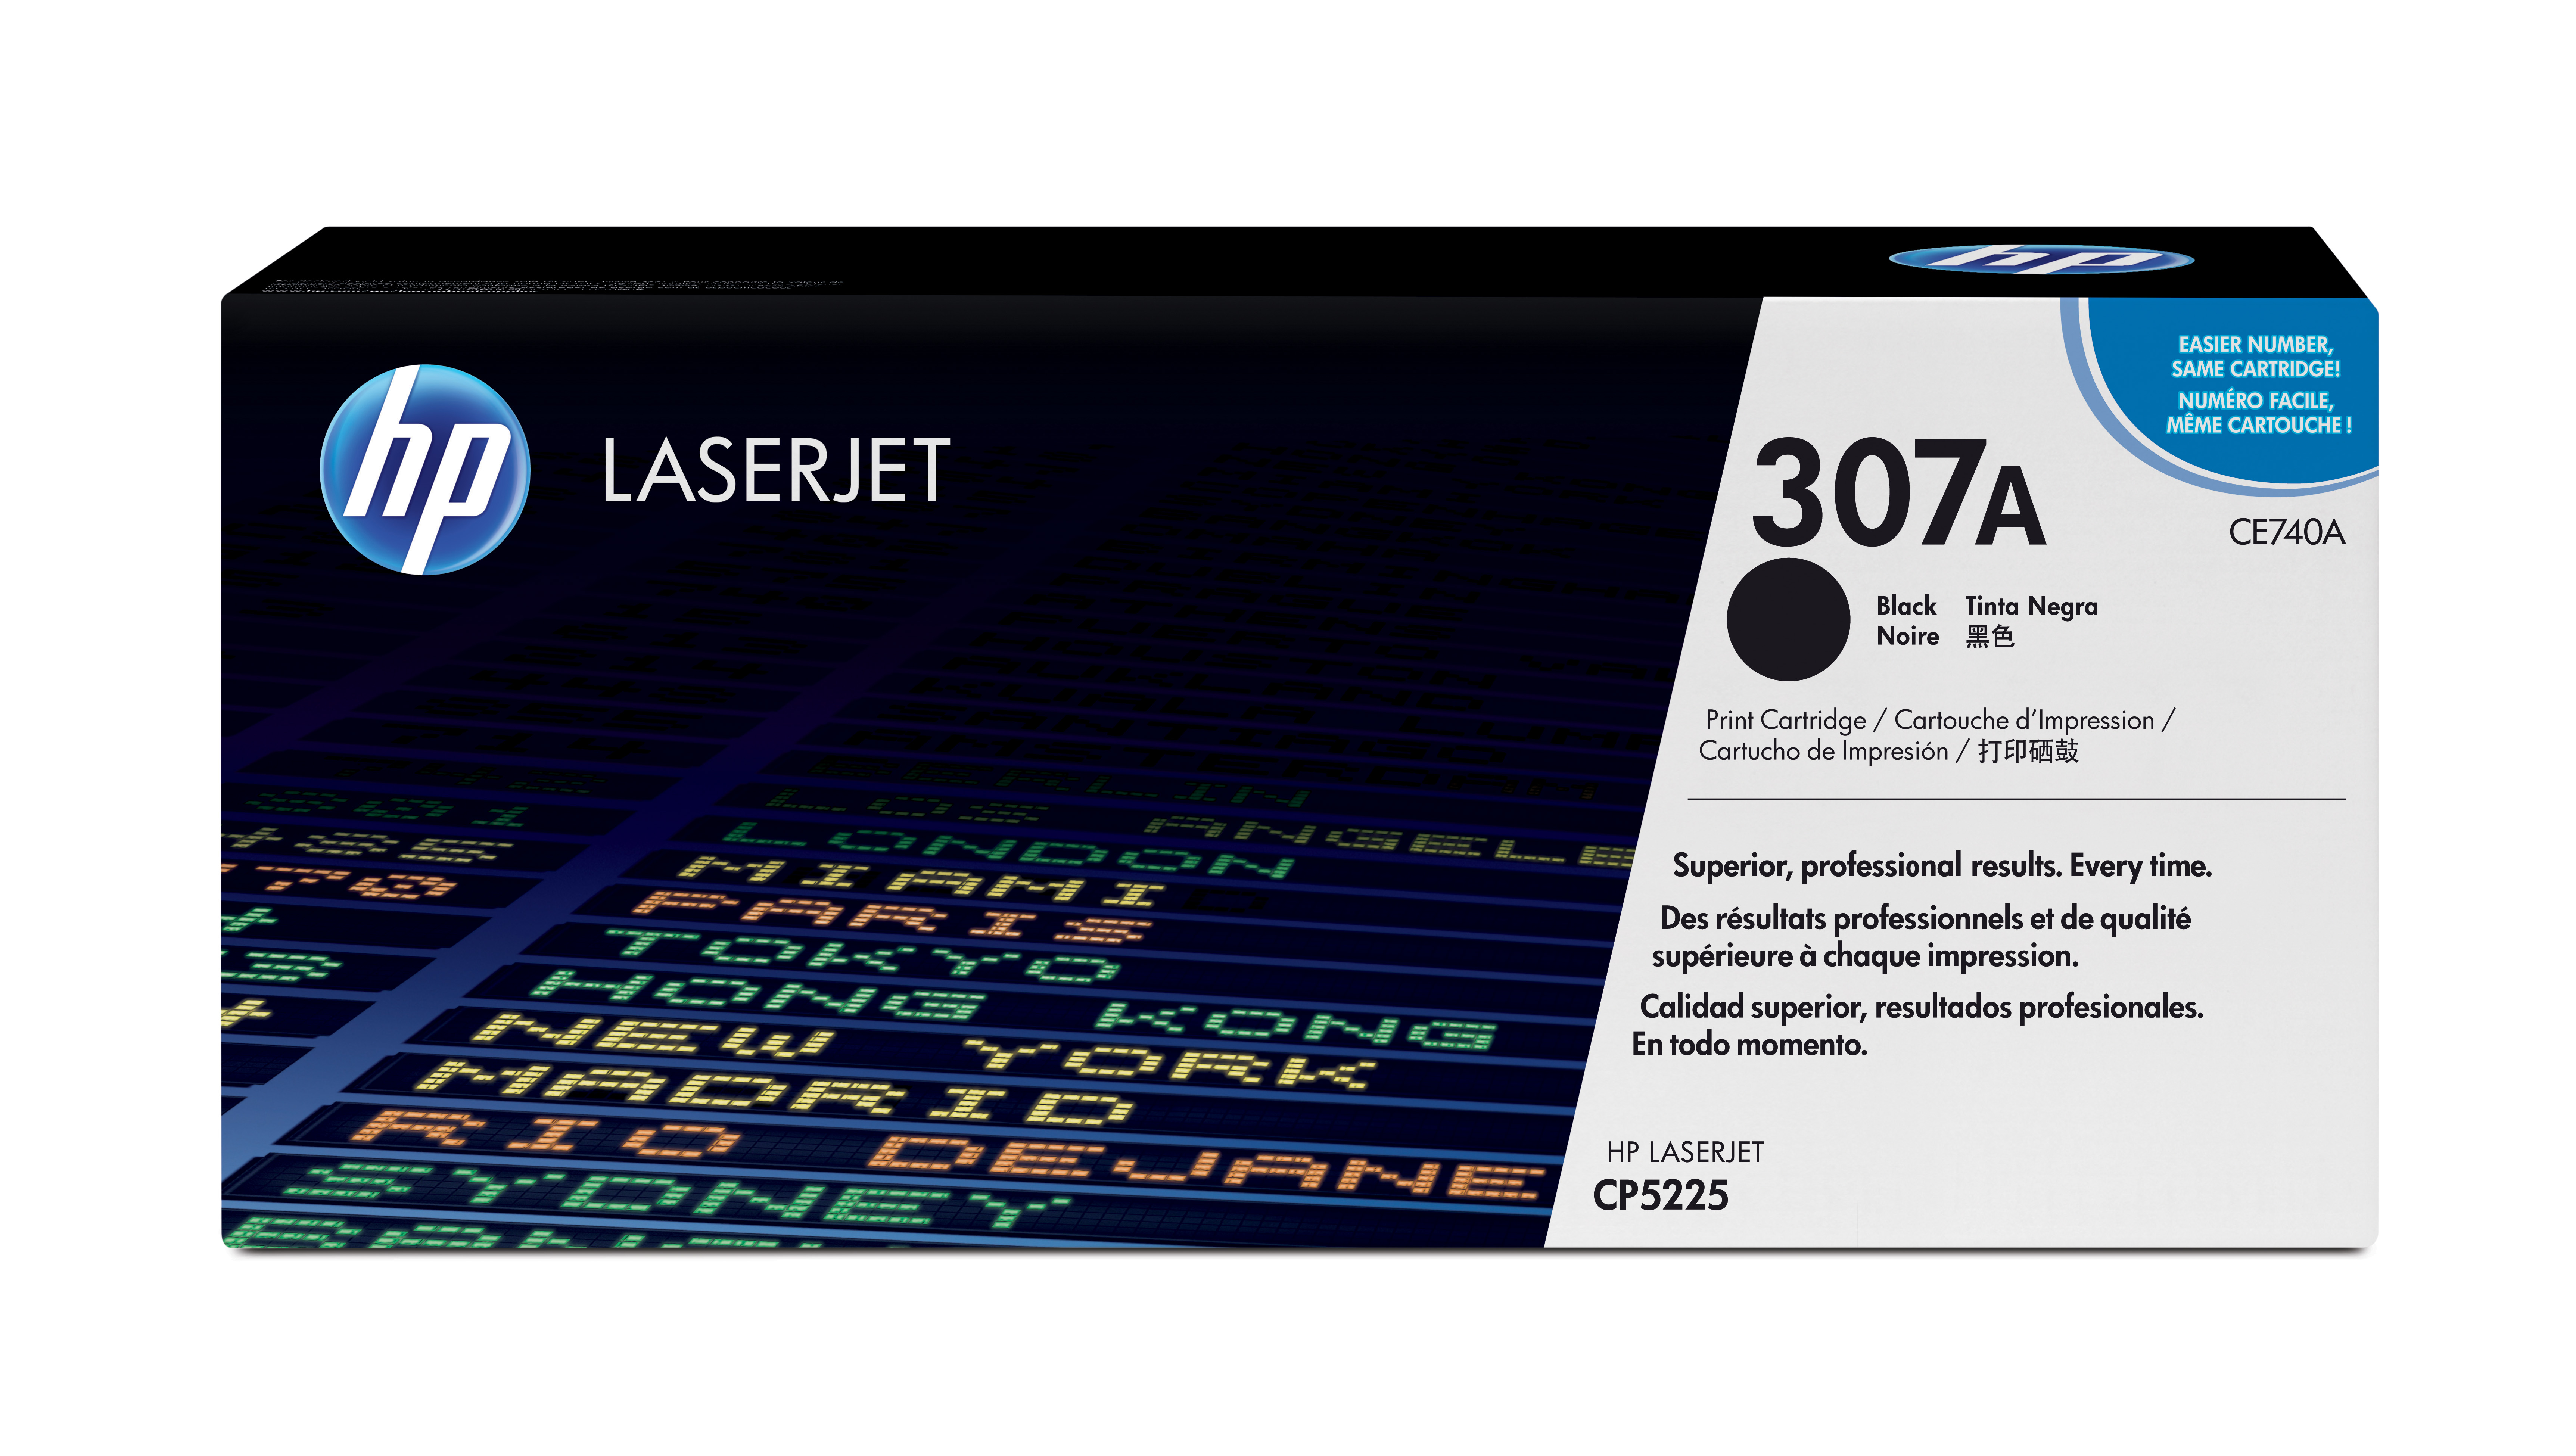 HP 307A Black Toner Cartridge CE740A